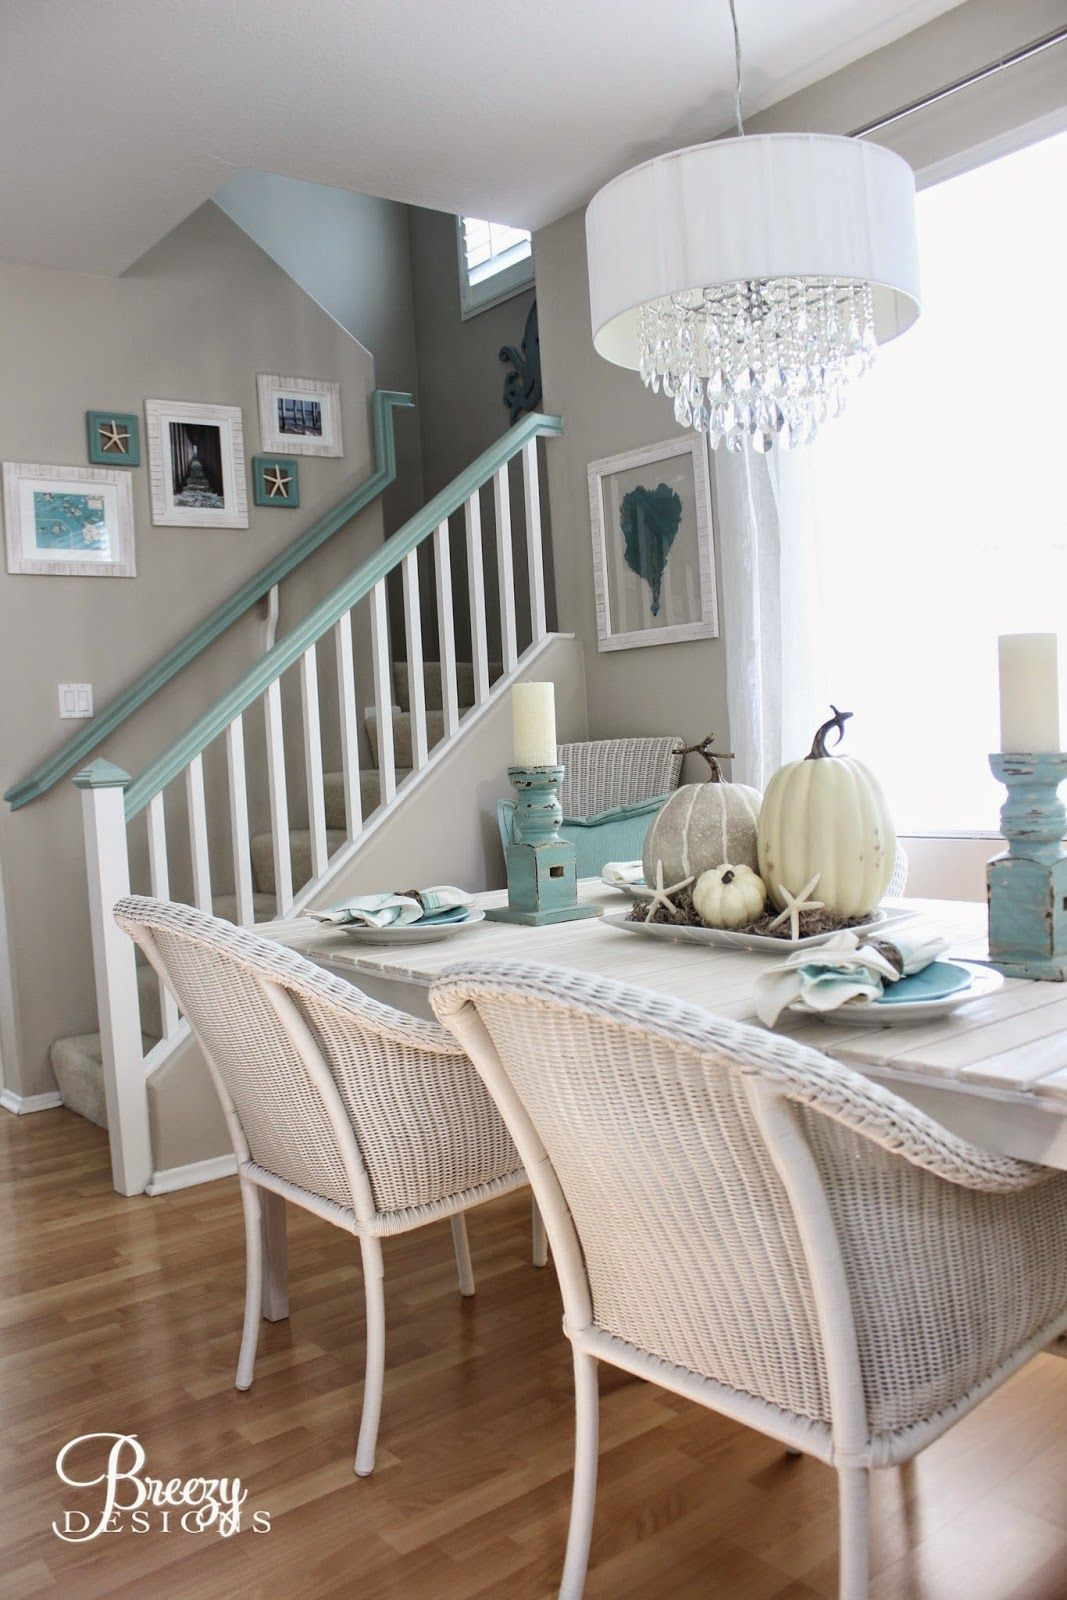 Breezy Designs: Hello Fall! | Beach Chic Design! | Pinterest ...